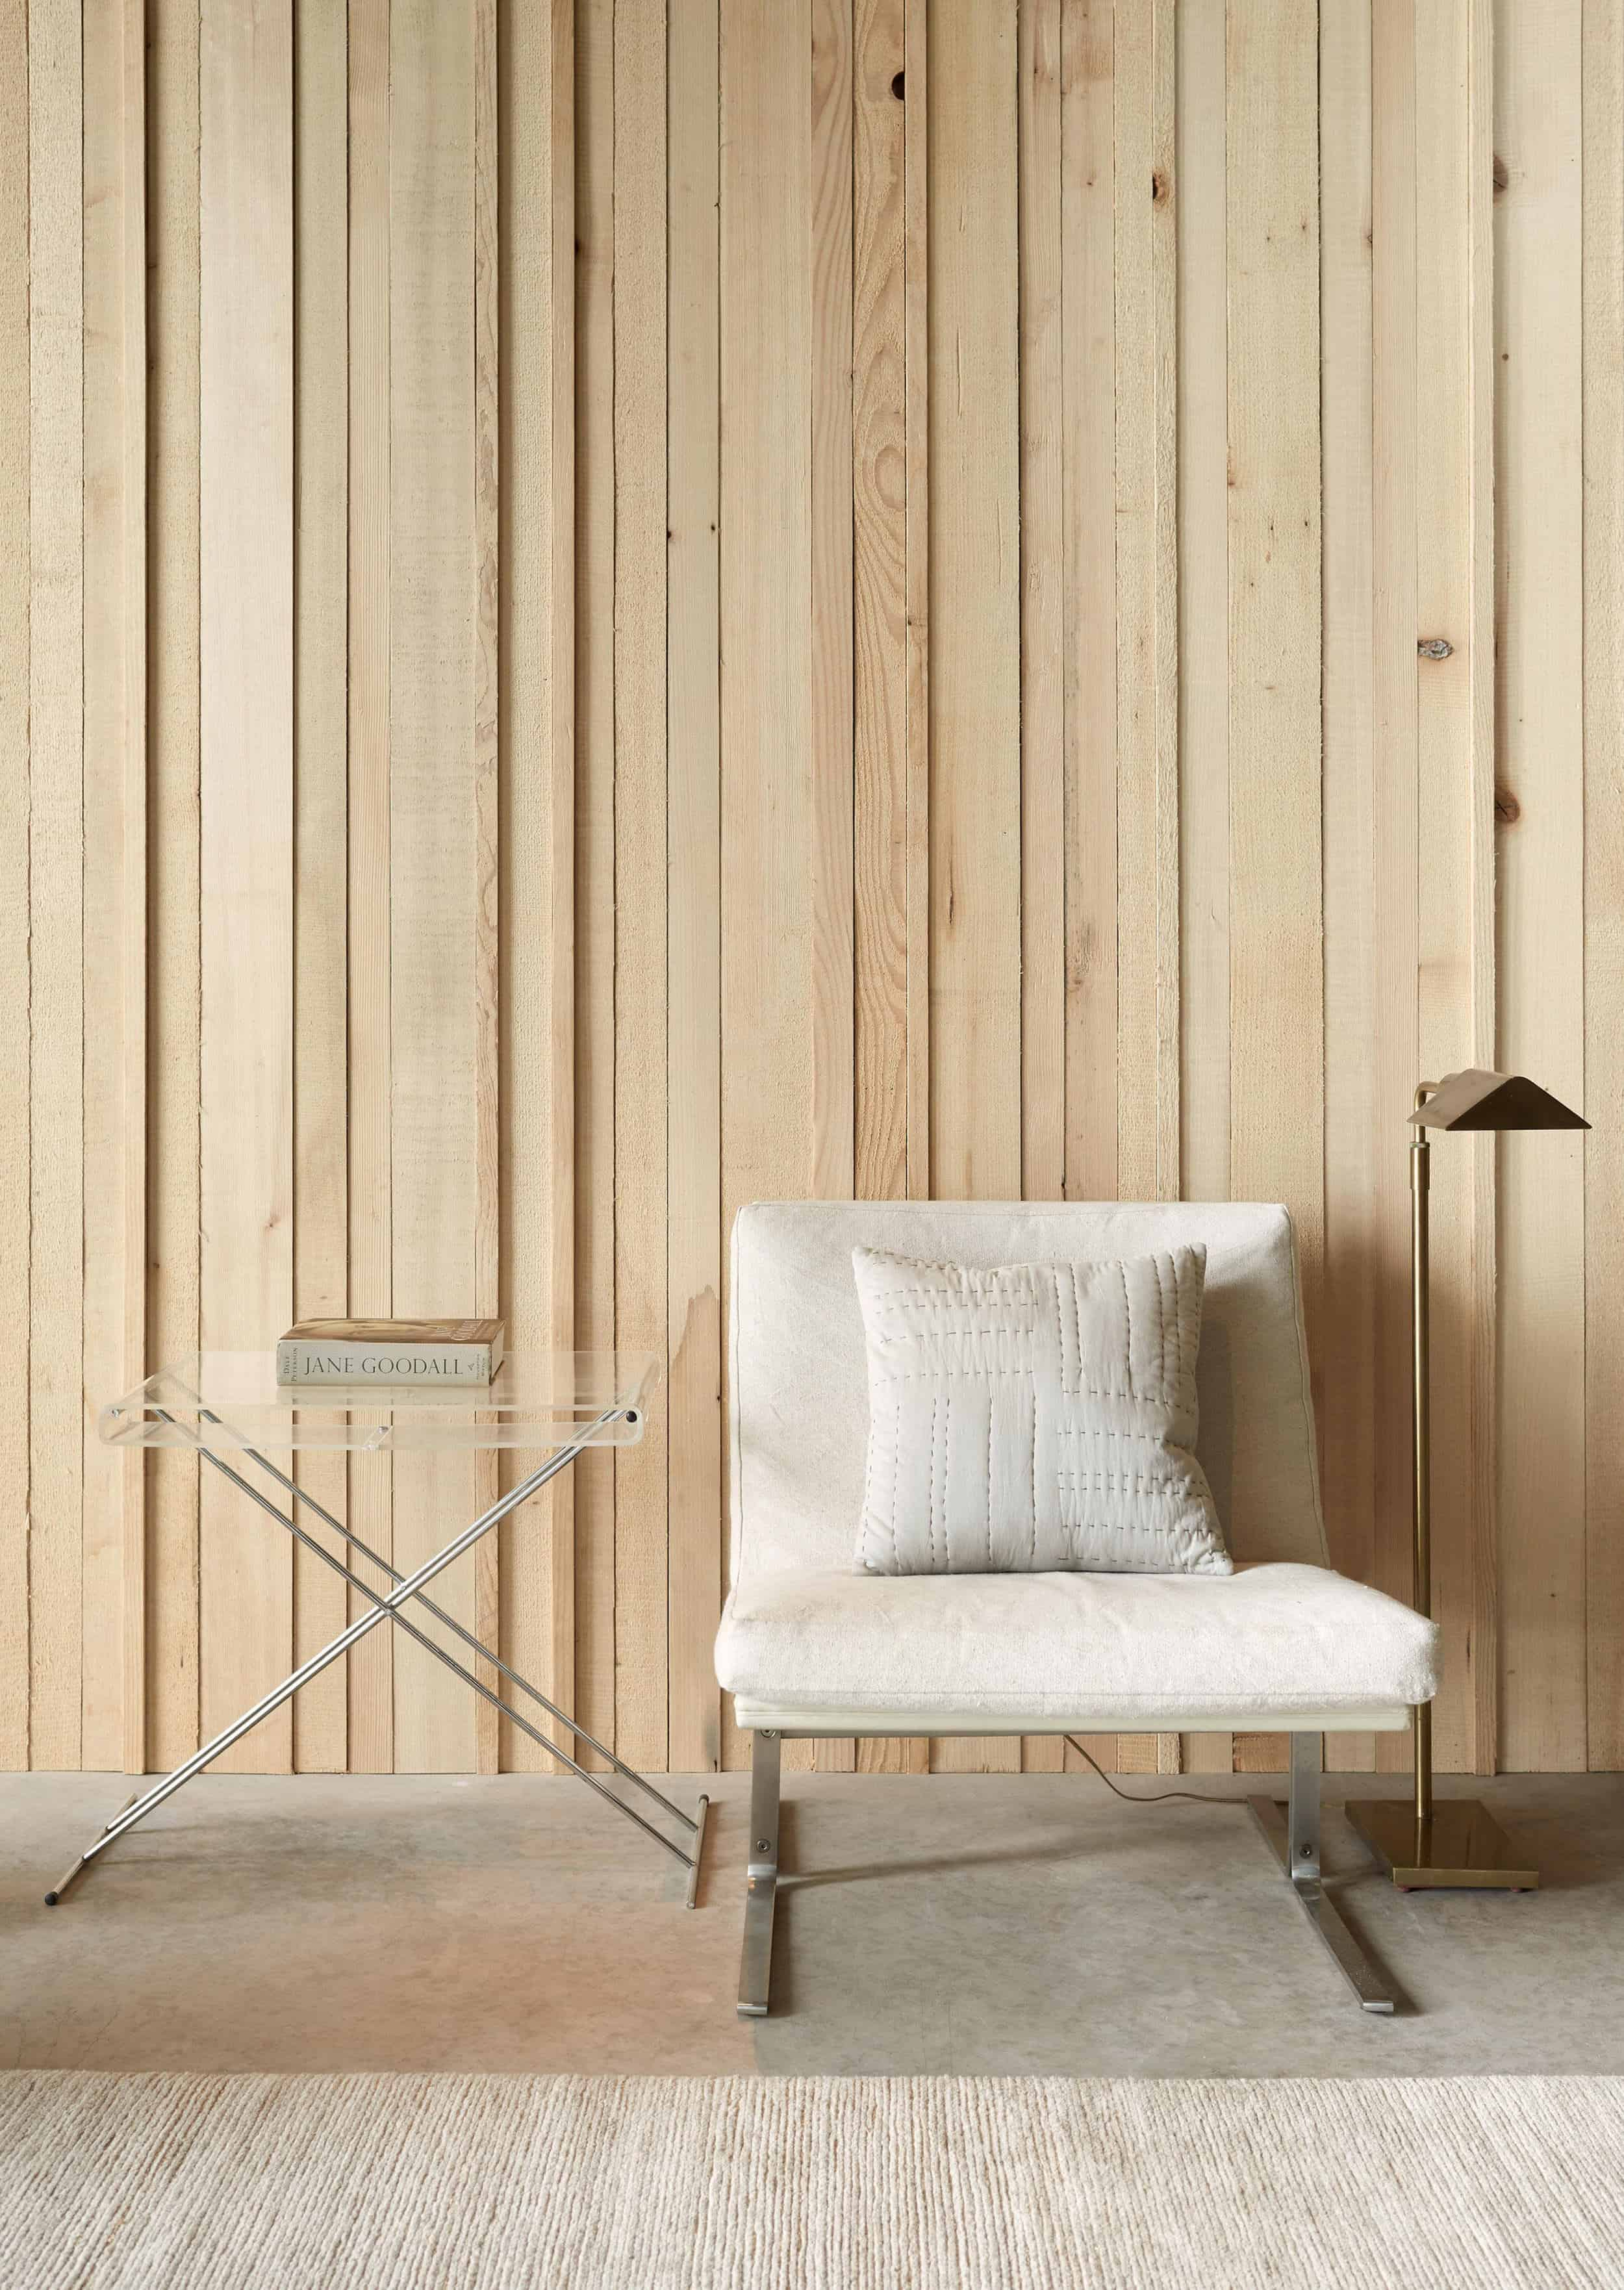 Emily Henderson How To Add Character To Basic Architecture Walls Celings Wood Unfinished Raw 34